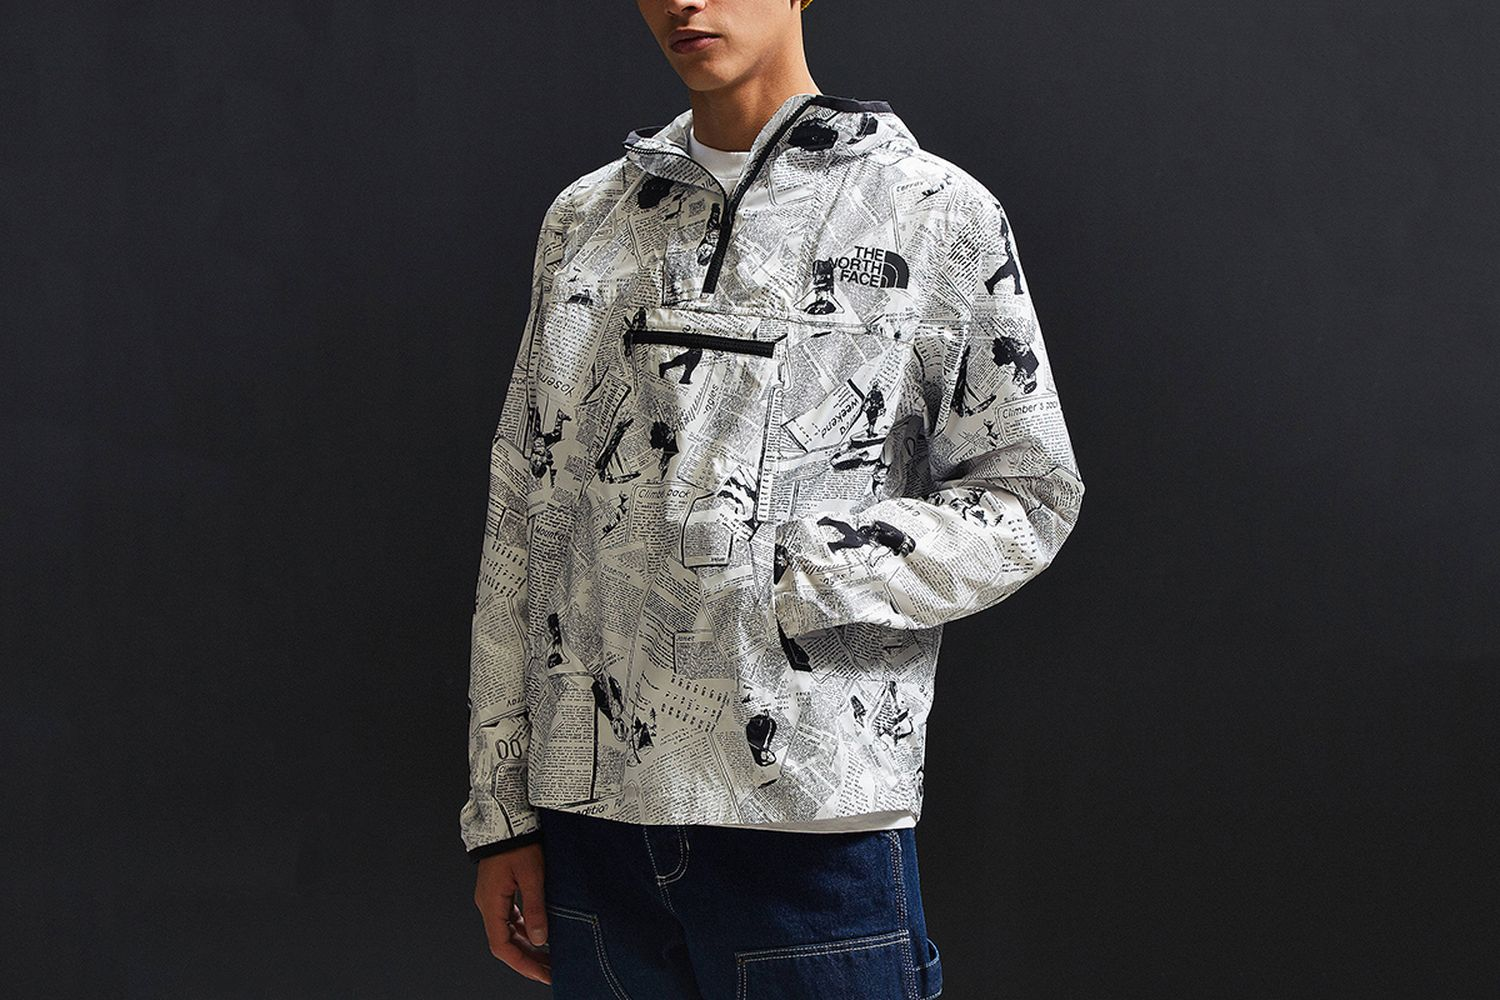 Crew Run Wind jacket